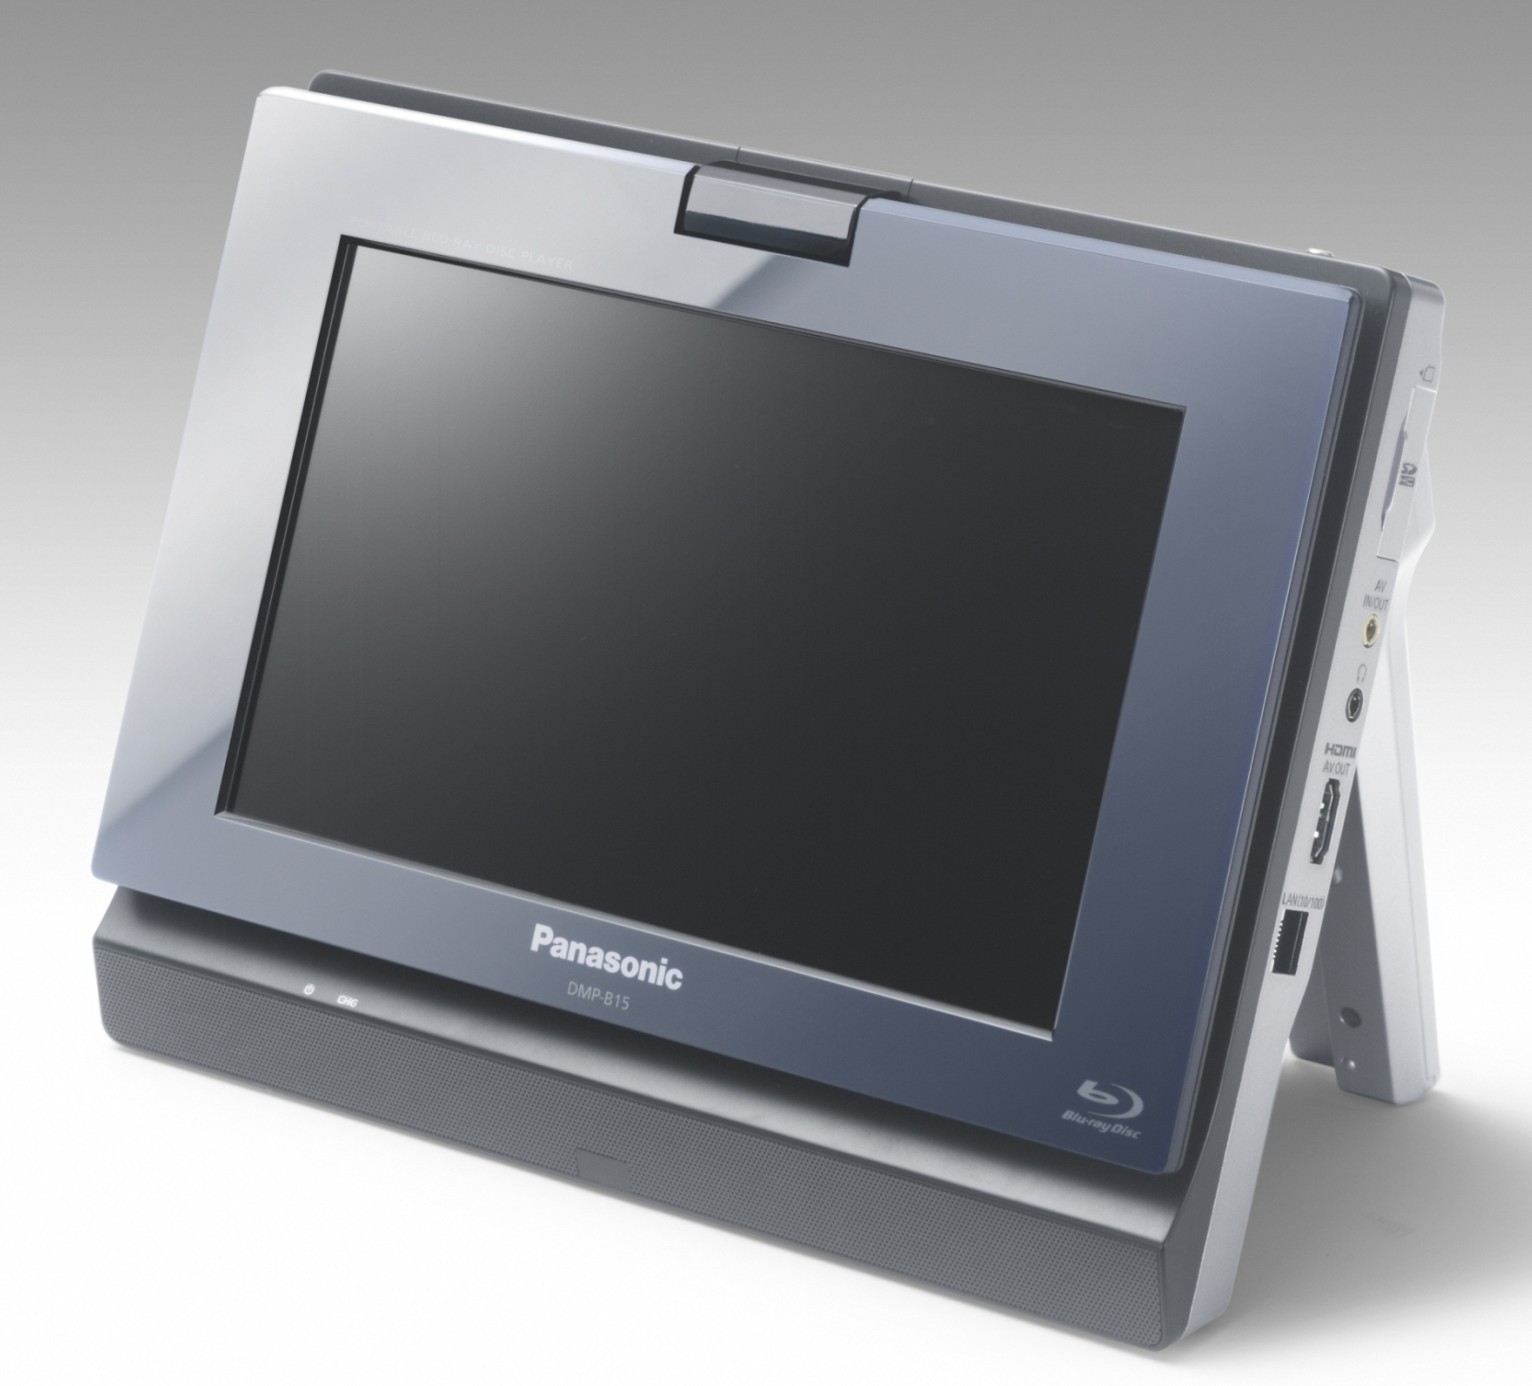 Panasonic DMP-B15 portable Blu-ray player lands June